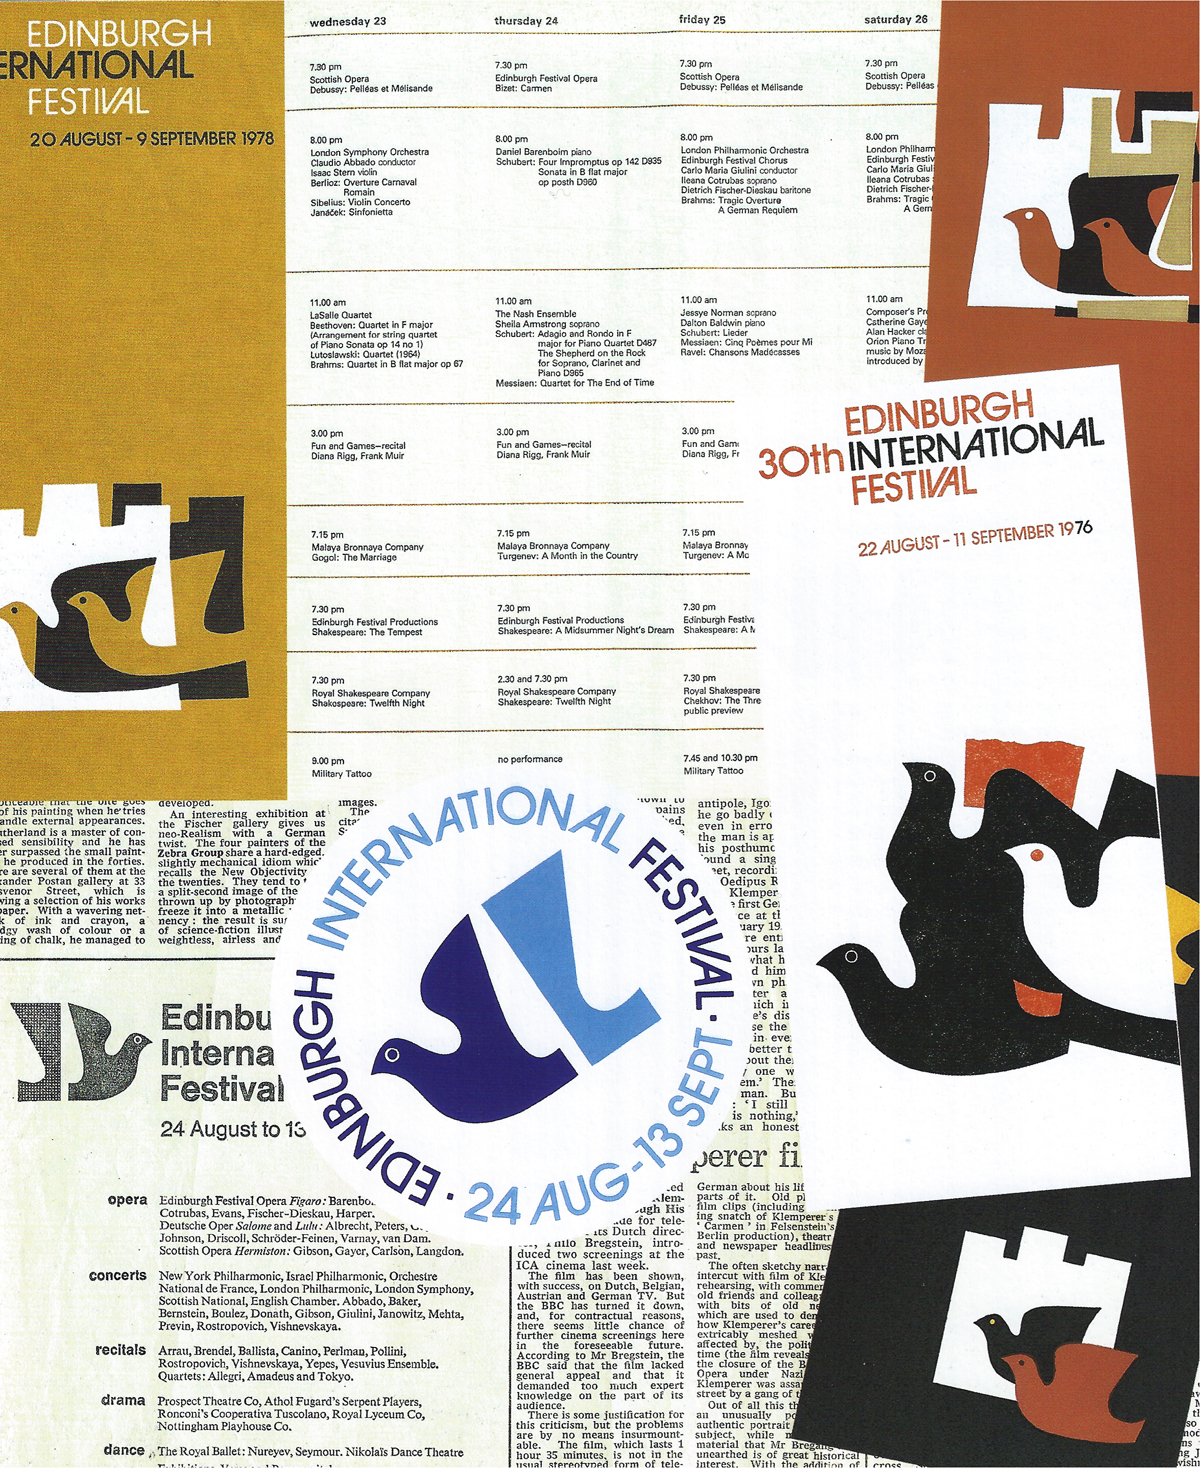 Edinburgh International Festival publicity material (1976-78). Designed by Hans and Pat Schleger (Hans Schleger Associates)